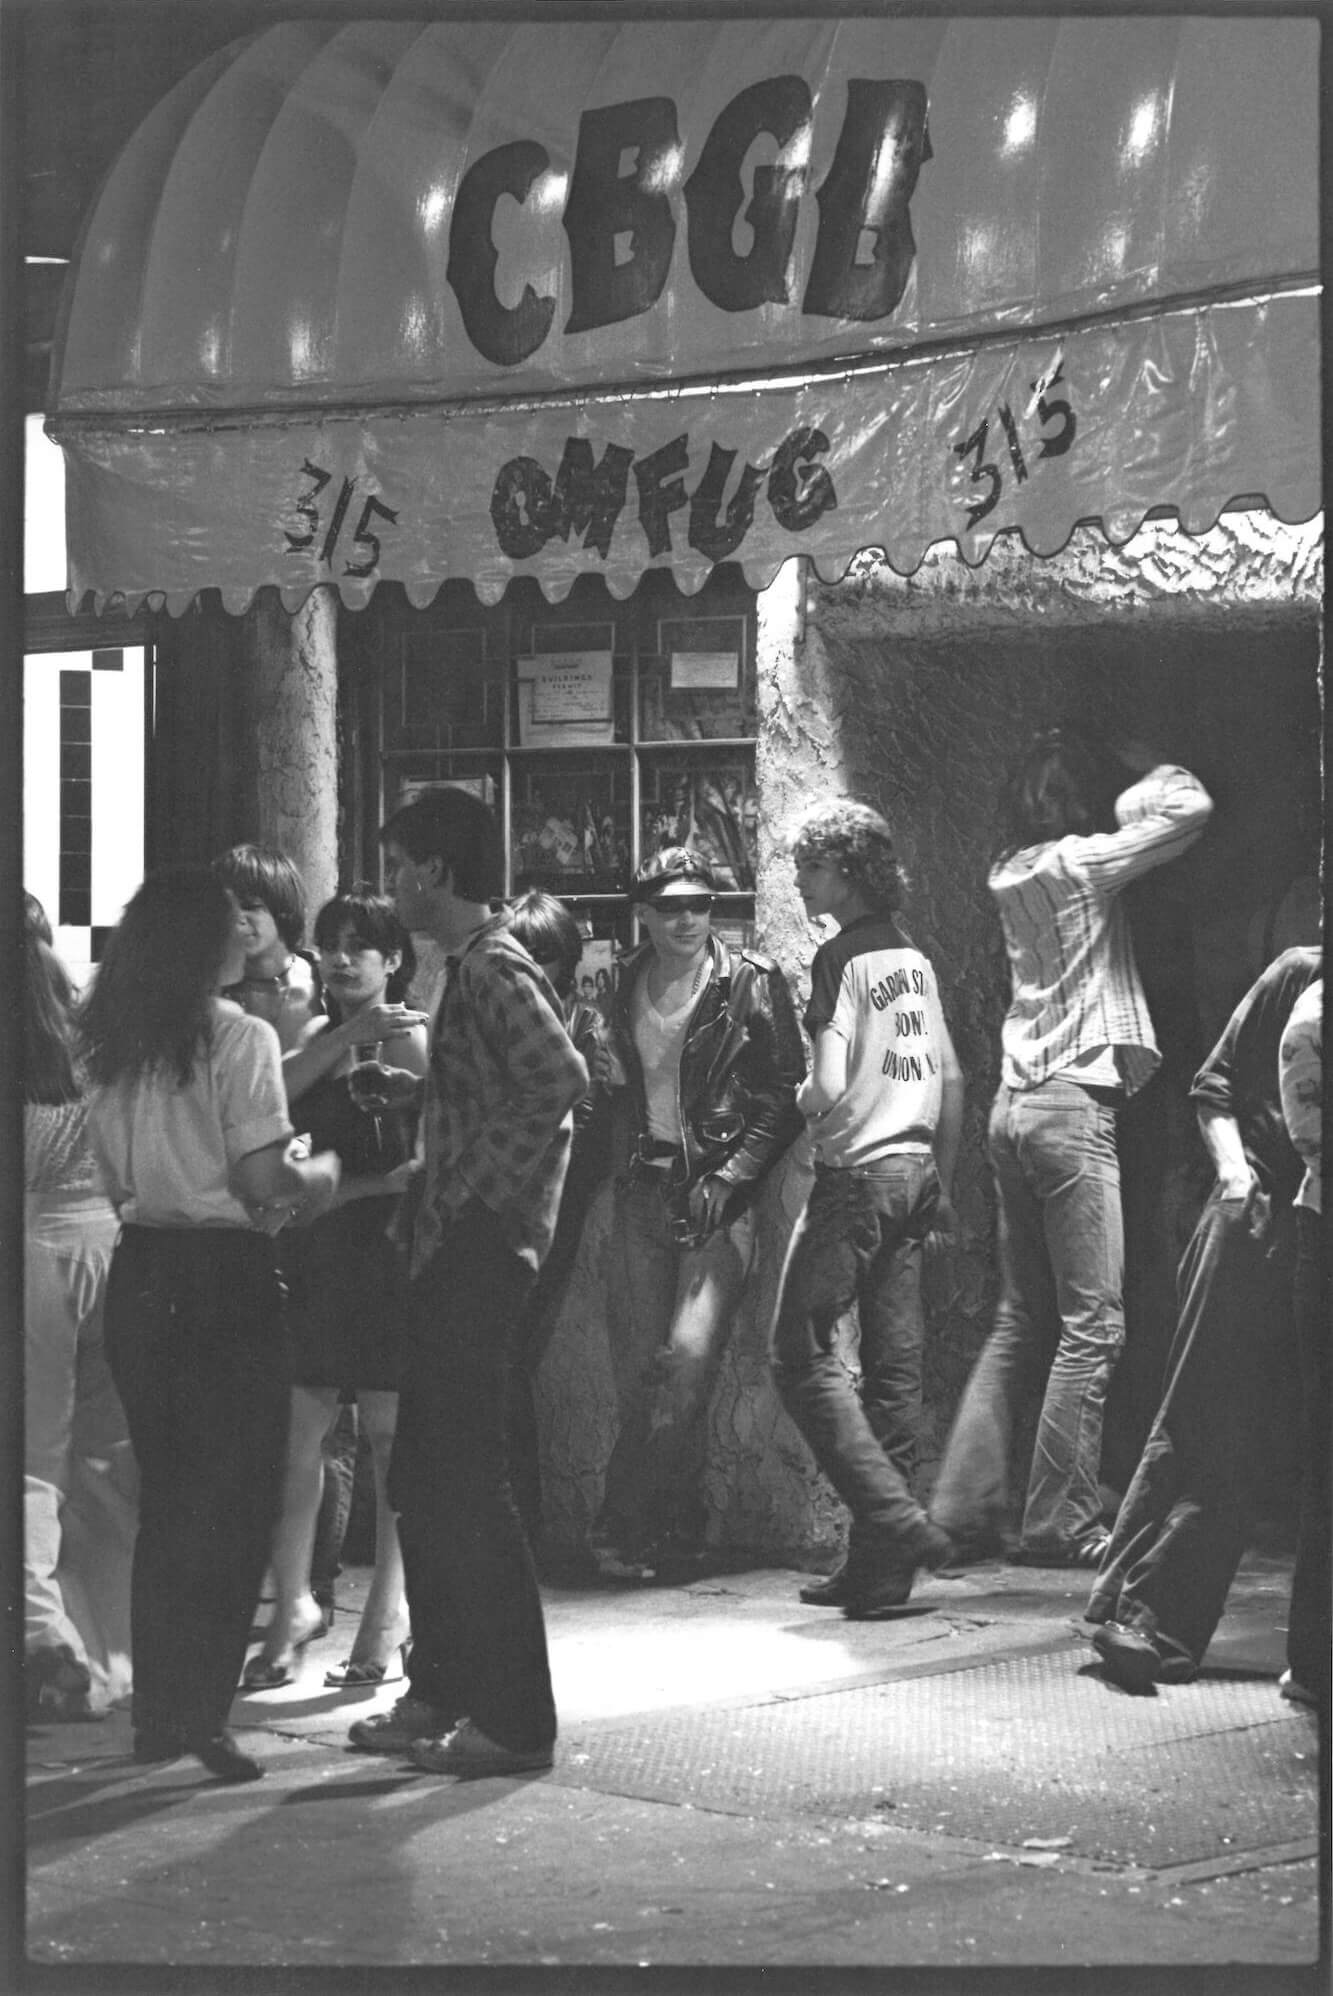 Exterior of CBGB nightclub